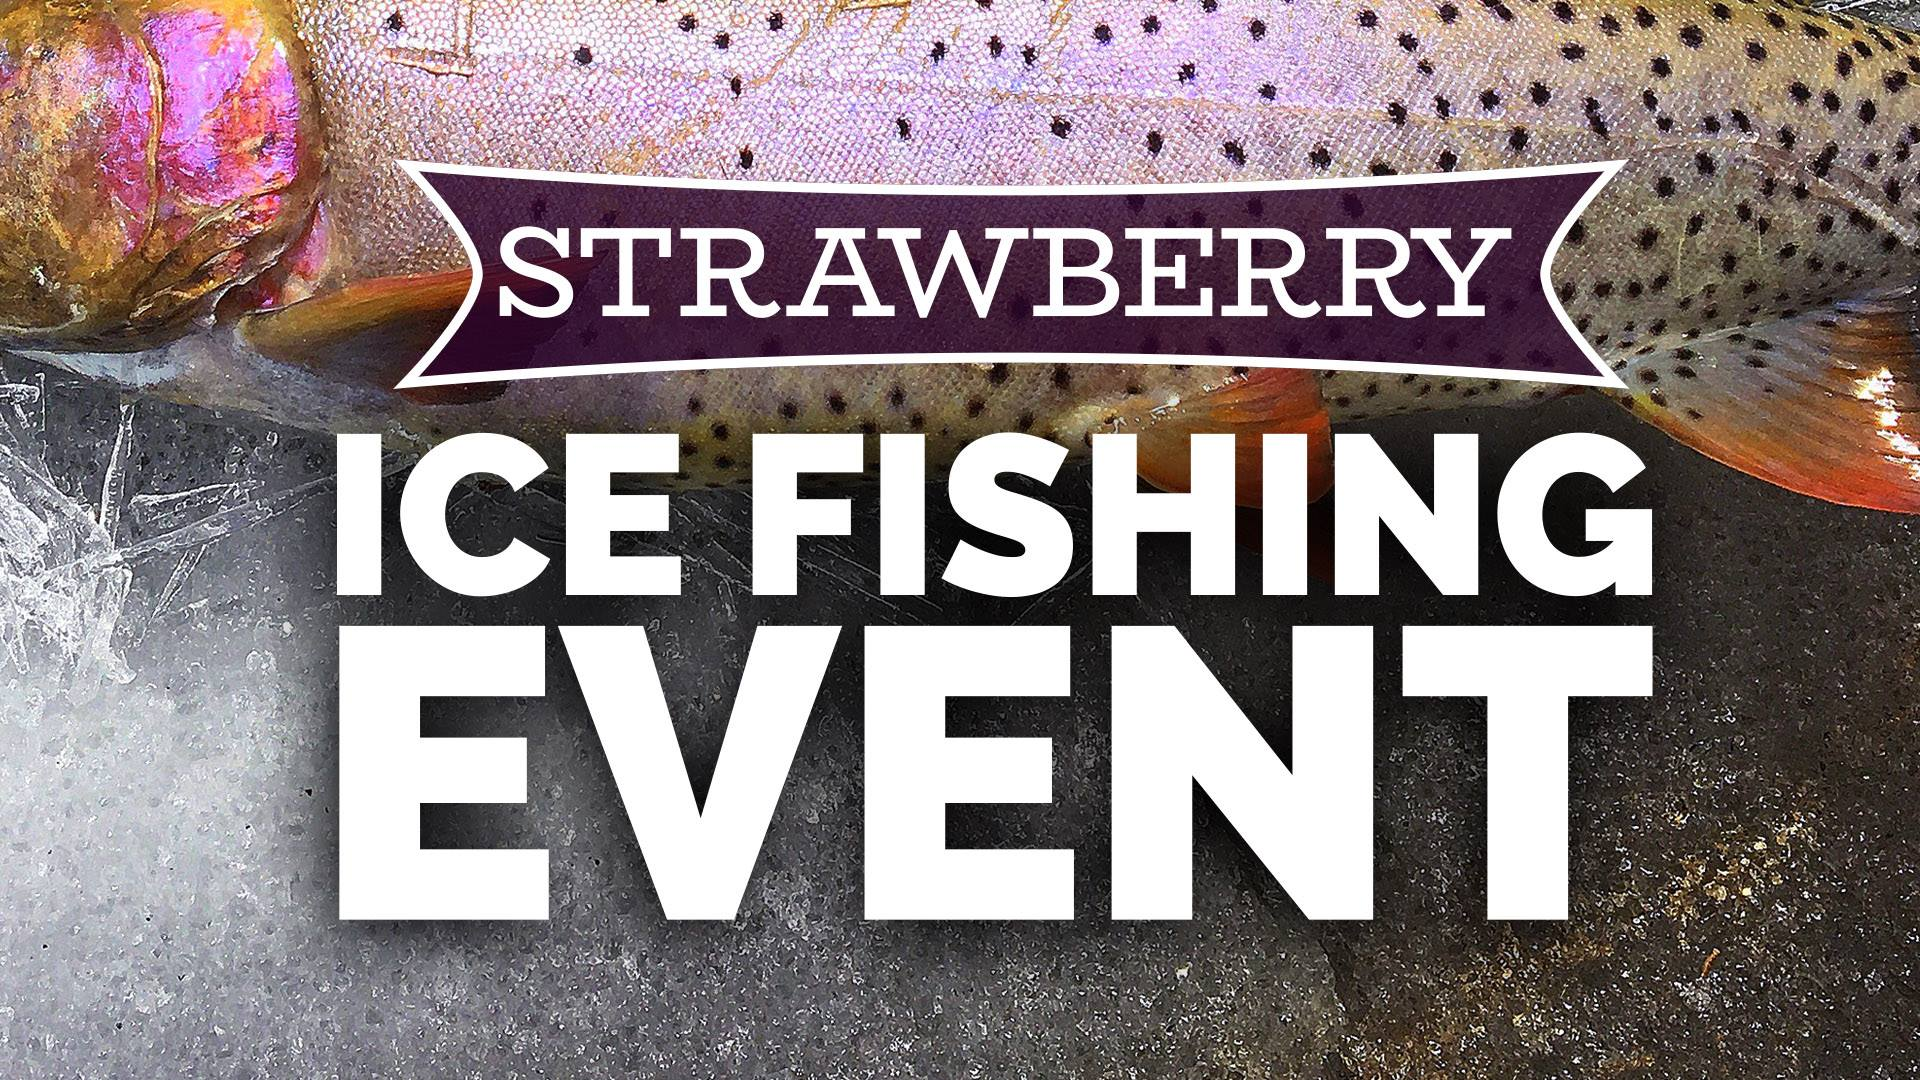 strawberry ice fishing